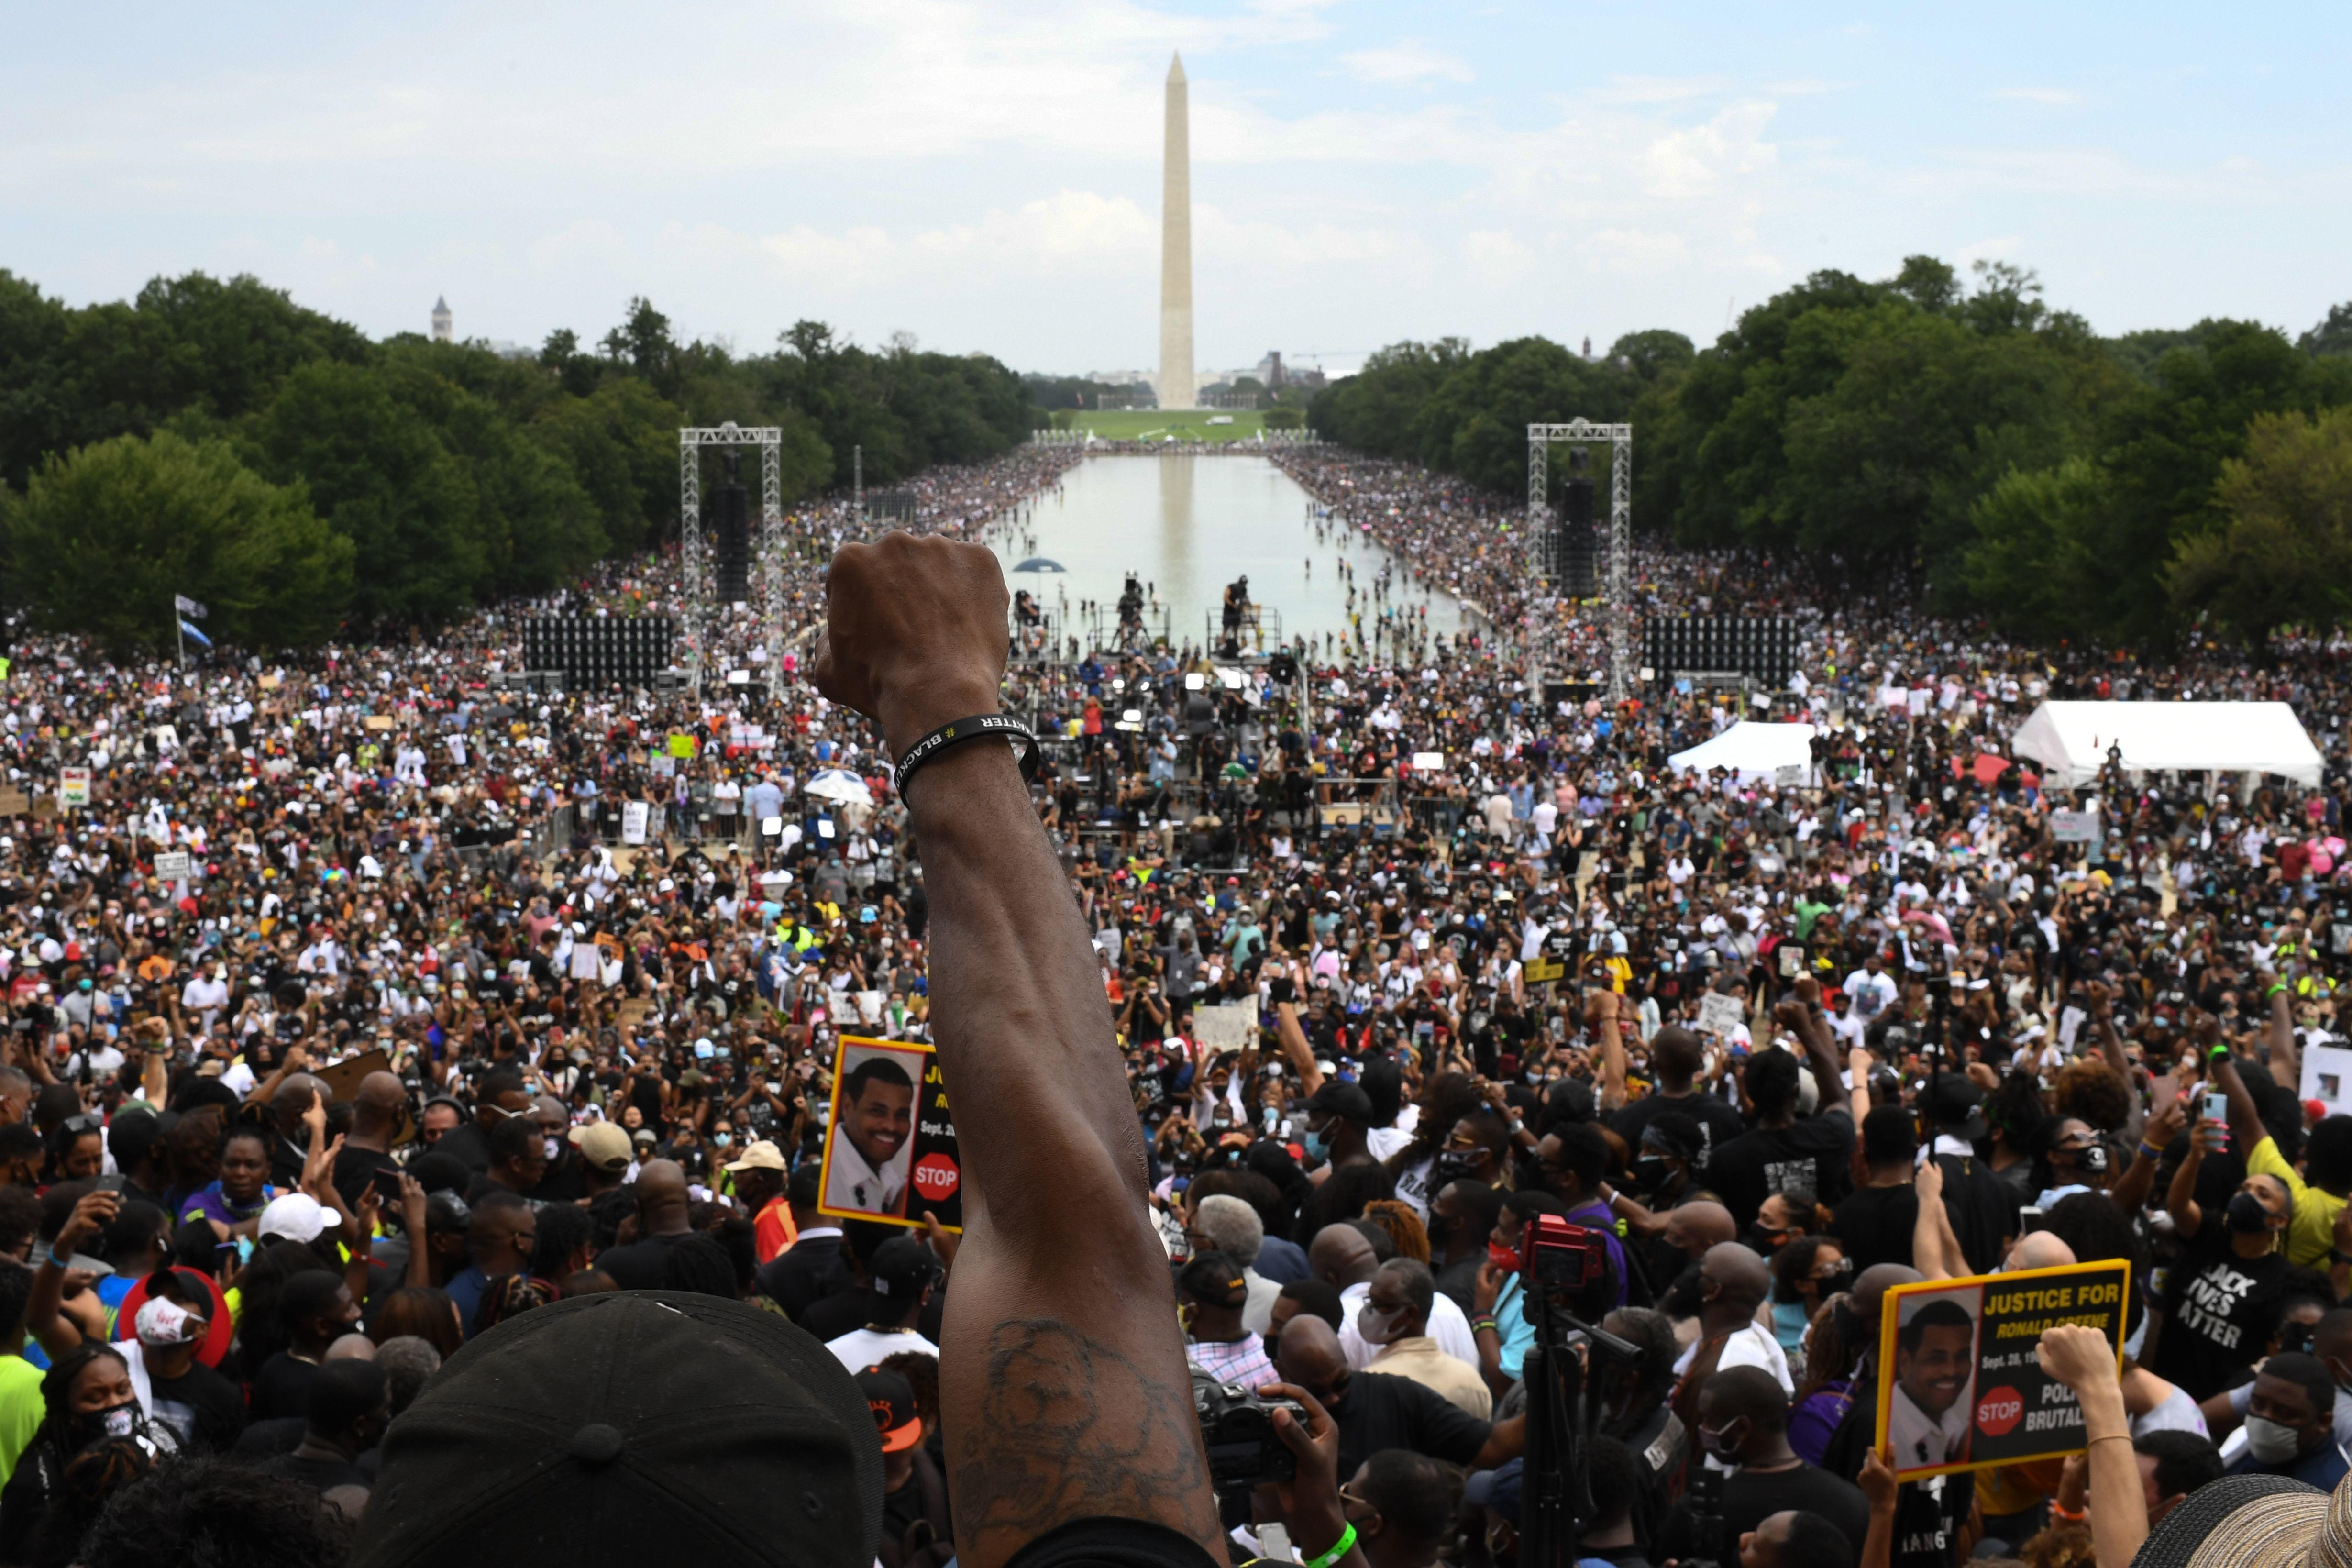 57 Years After Martin Luther King Jr S I Have A Dream Speech Thousands Converge In D C For Another March On Washington Cbs News